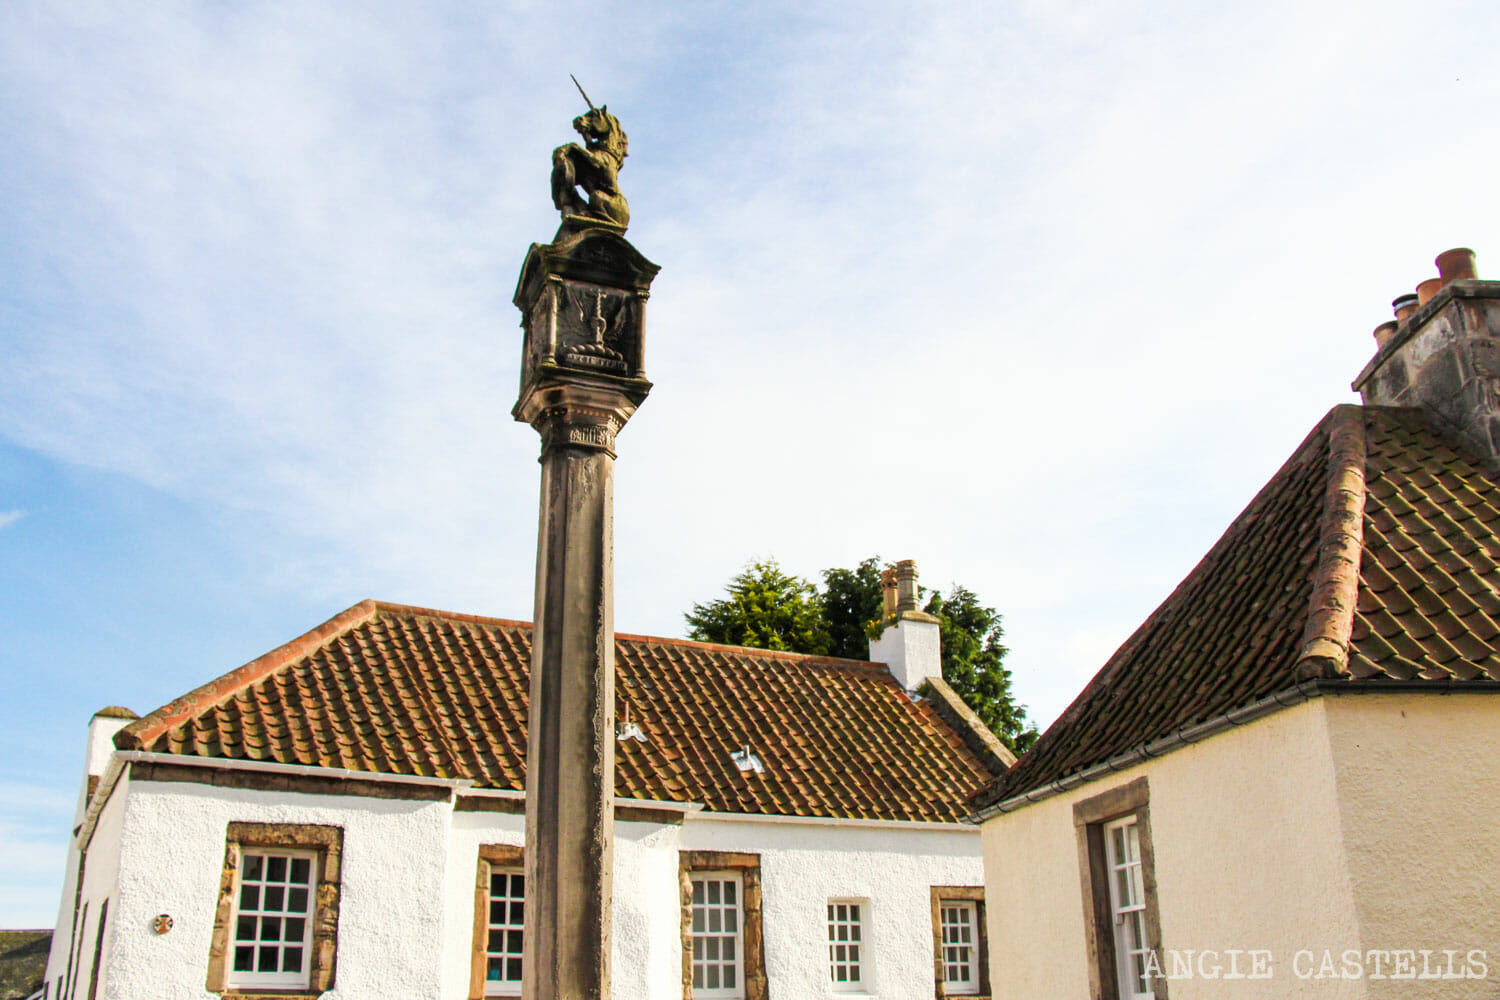 El unicornio, el animal nacional de Escocia - Culross Mercat Cross